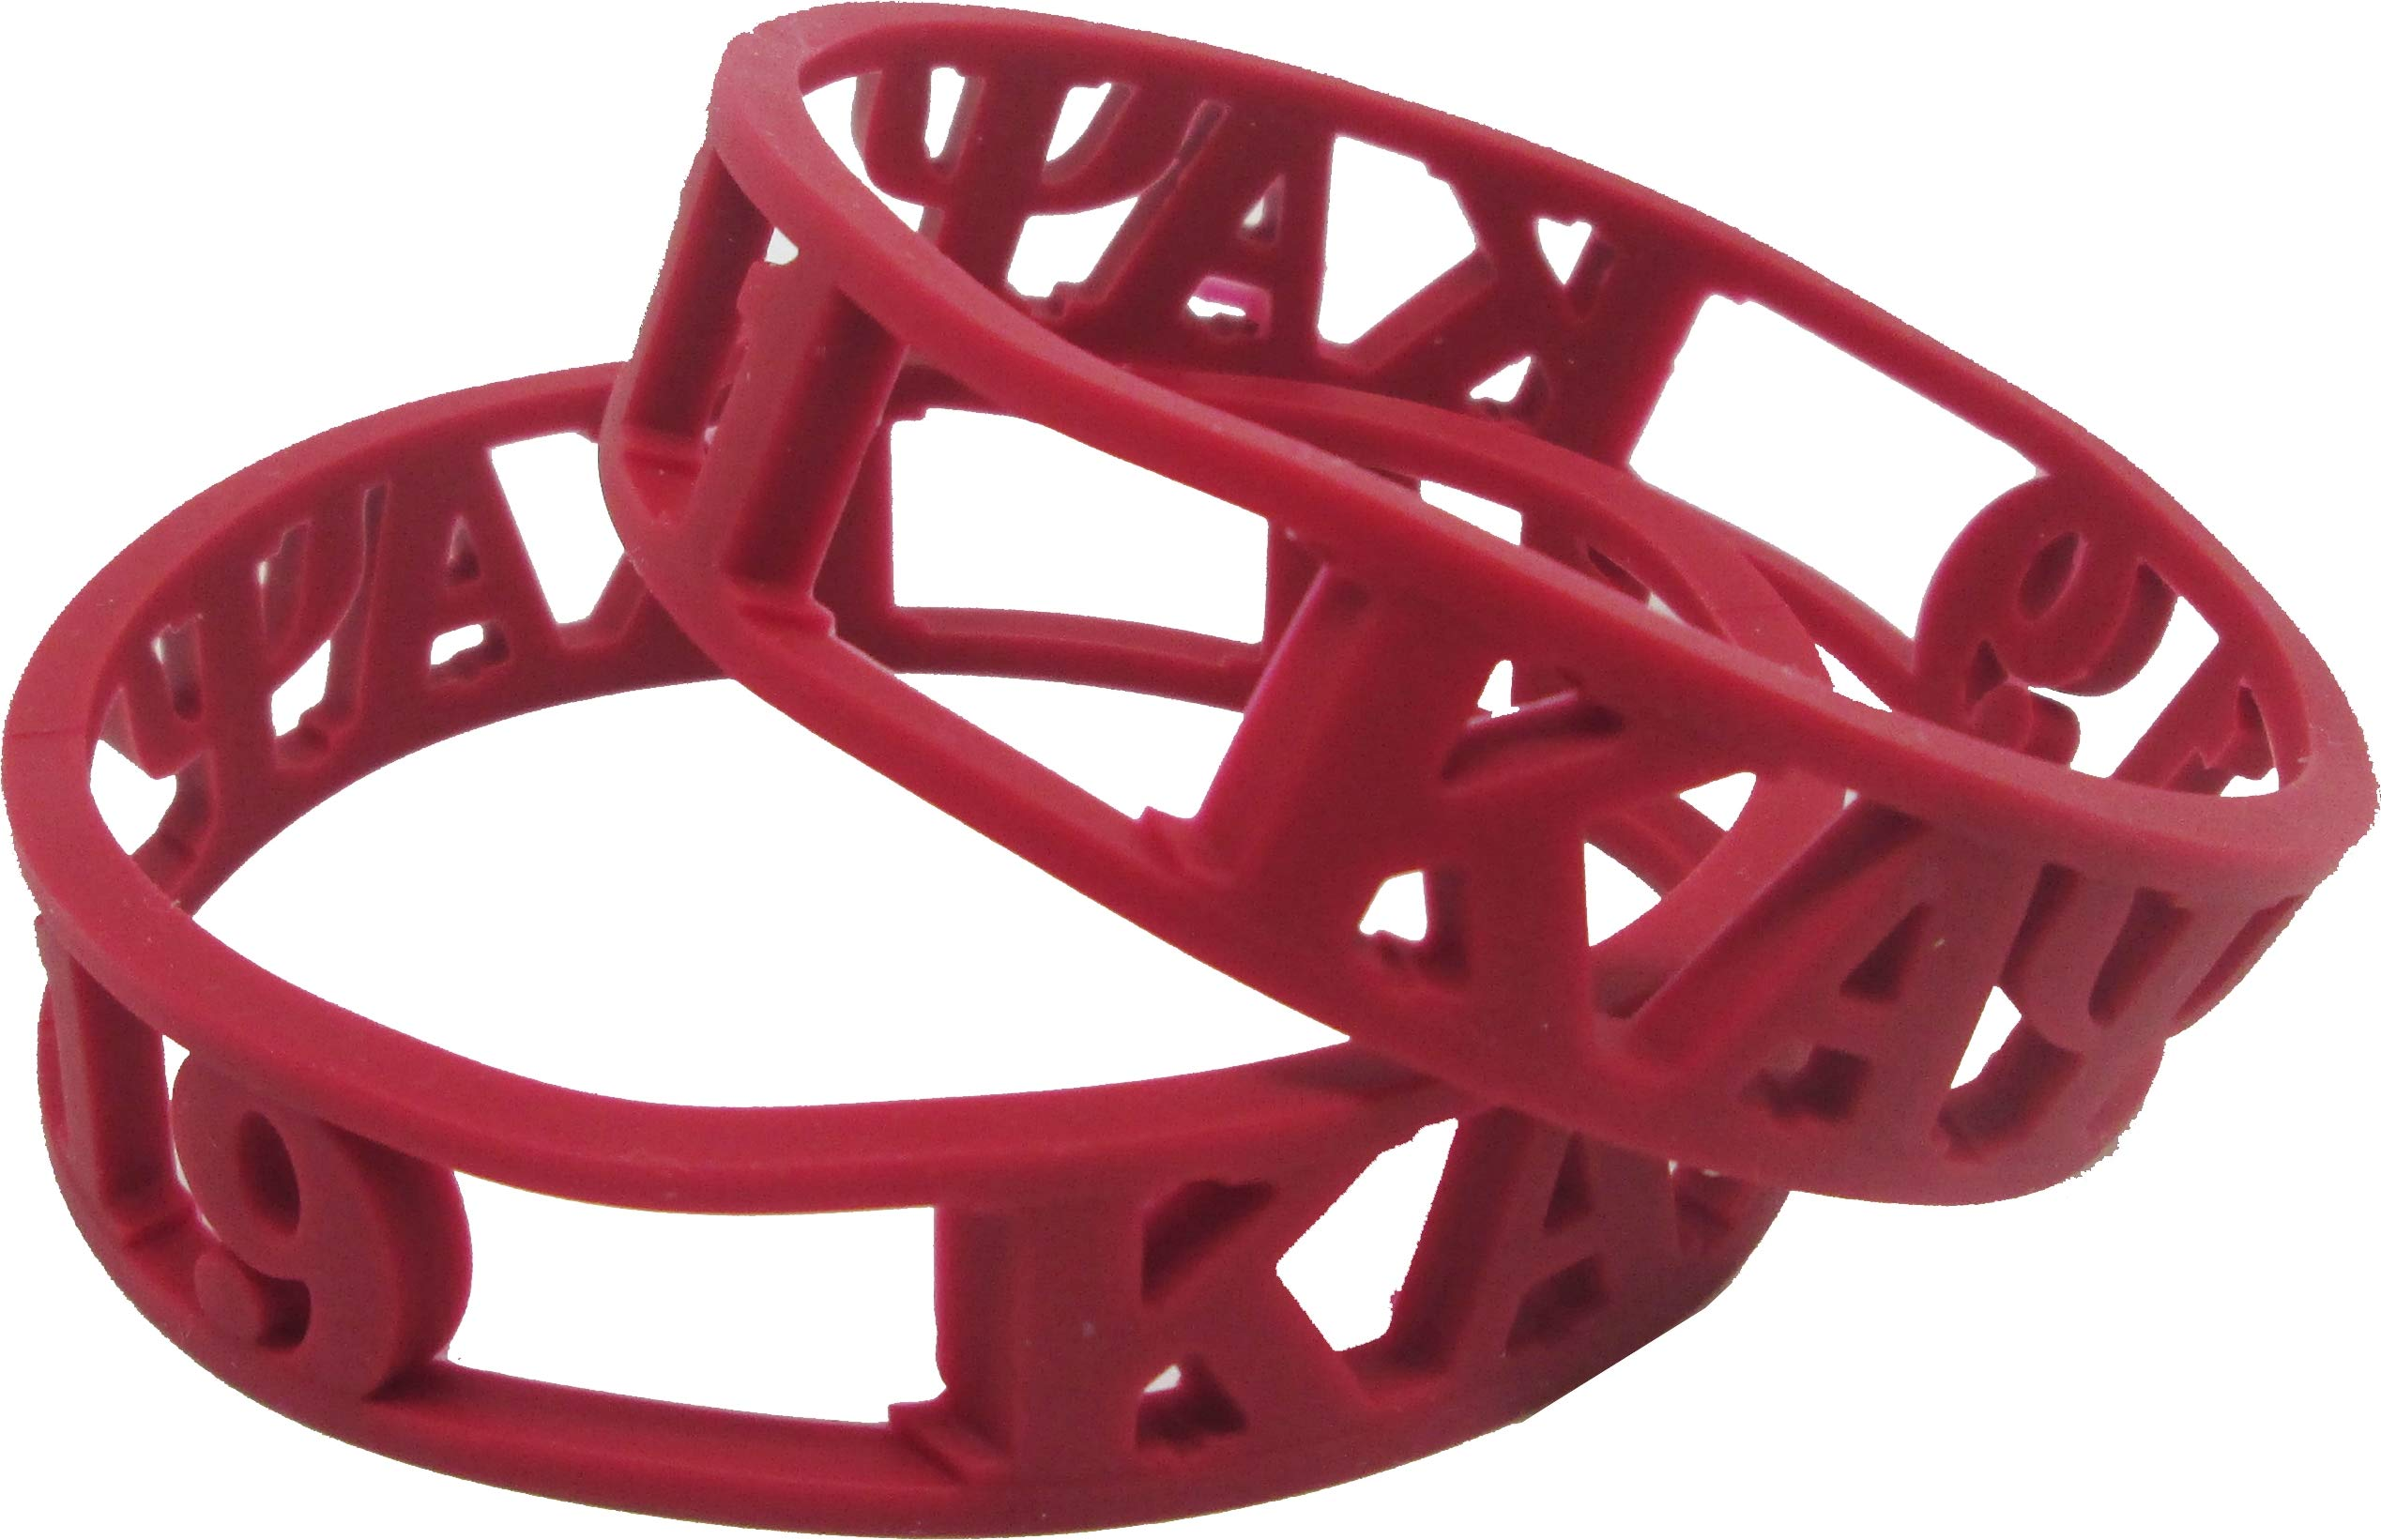 Cultural Exchange Kappa Alpha Psi 3D Cut Out Silicone Bracelet [Pack of 2 - Red] by Cultural Exchange (Image #2)